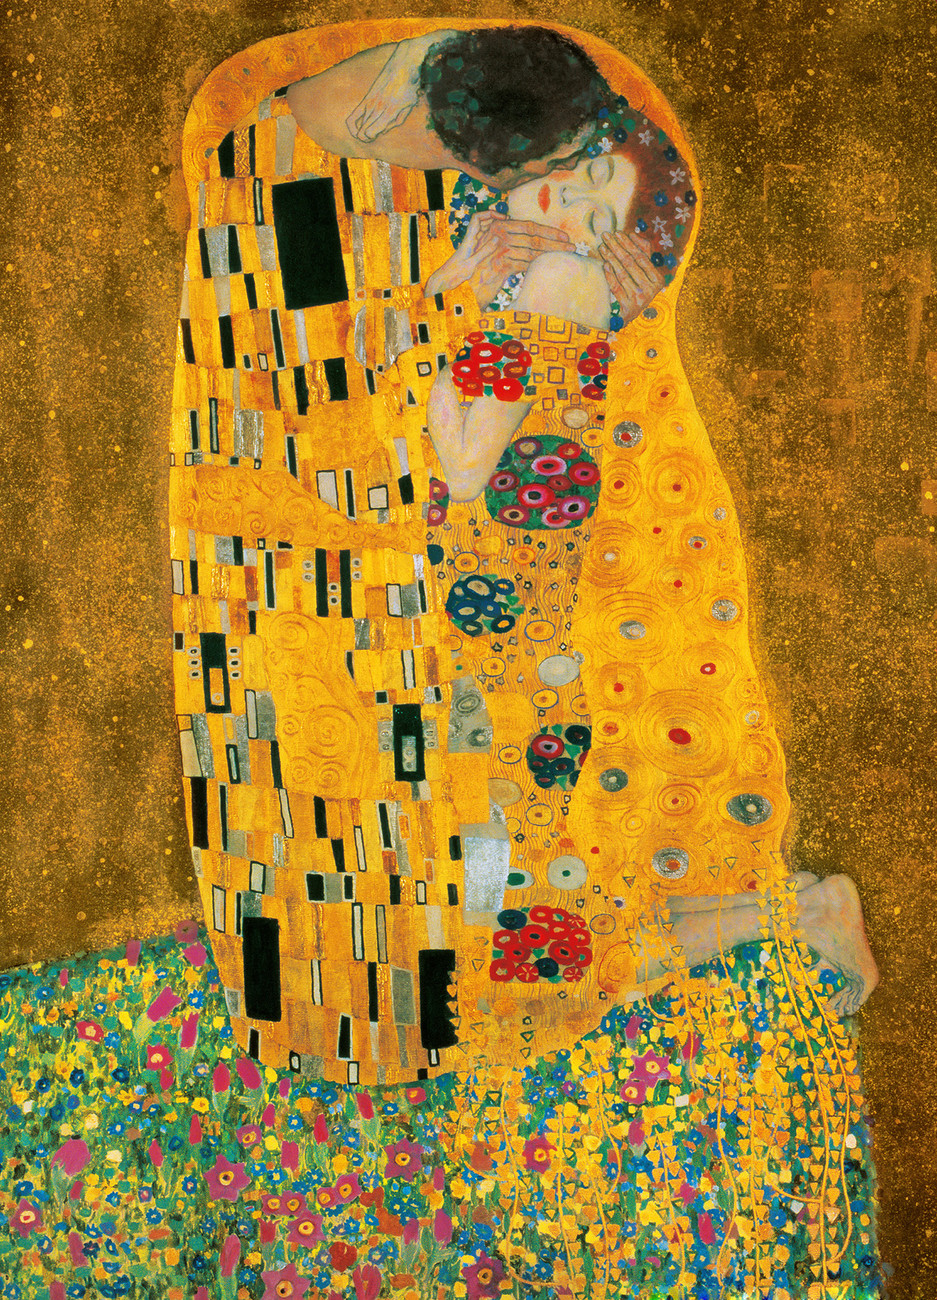 fotomurale gustav klimt el beso 1907 1908 papel pintado. Black Bedroom Furniture Sets. Home Design Ideas